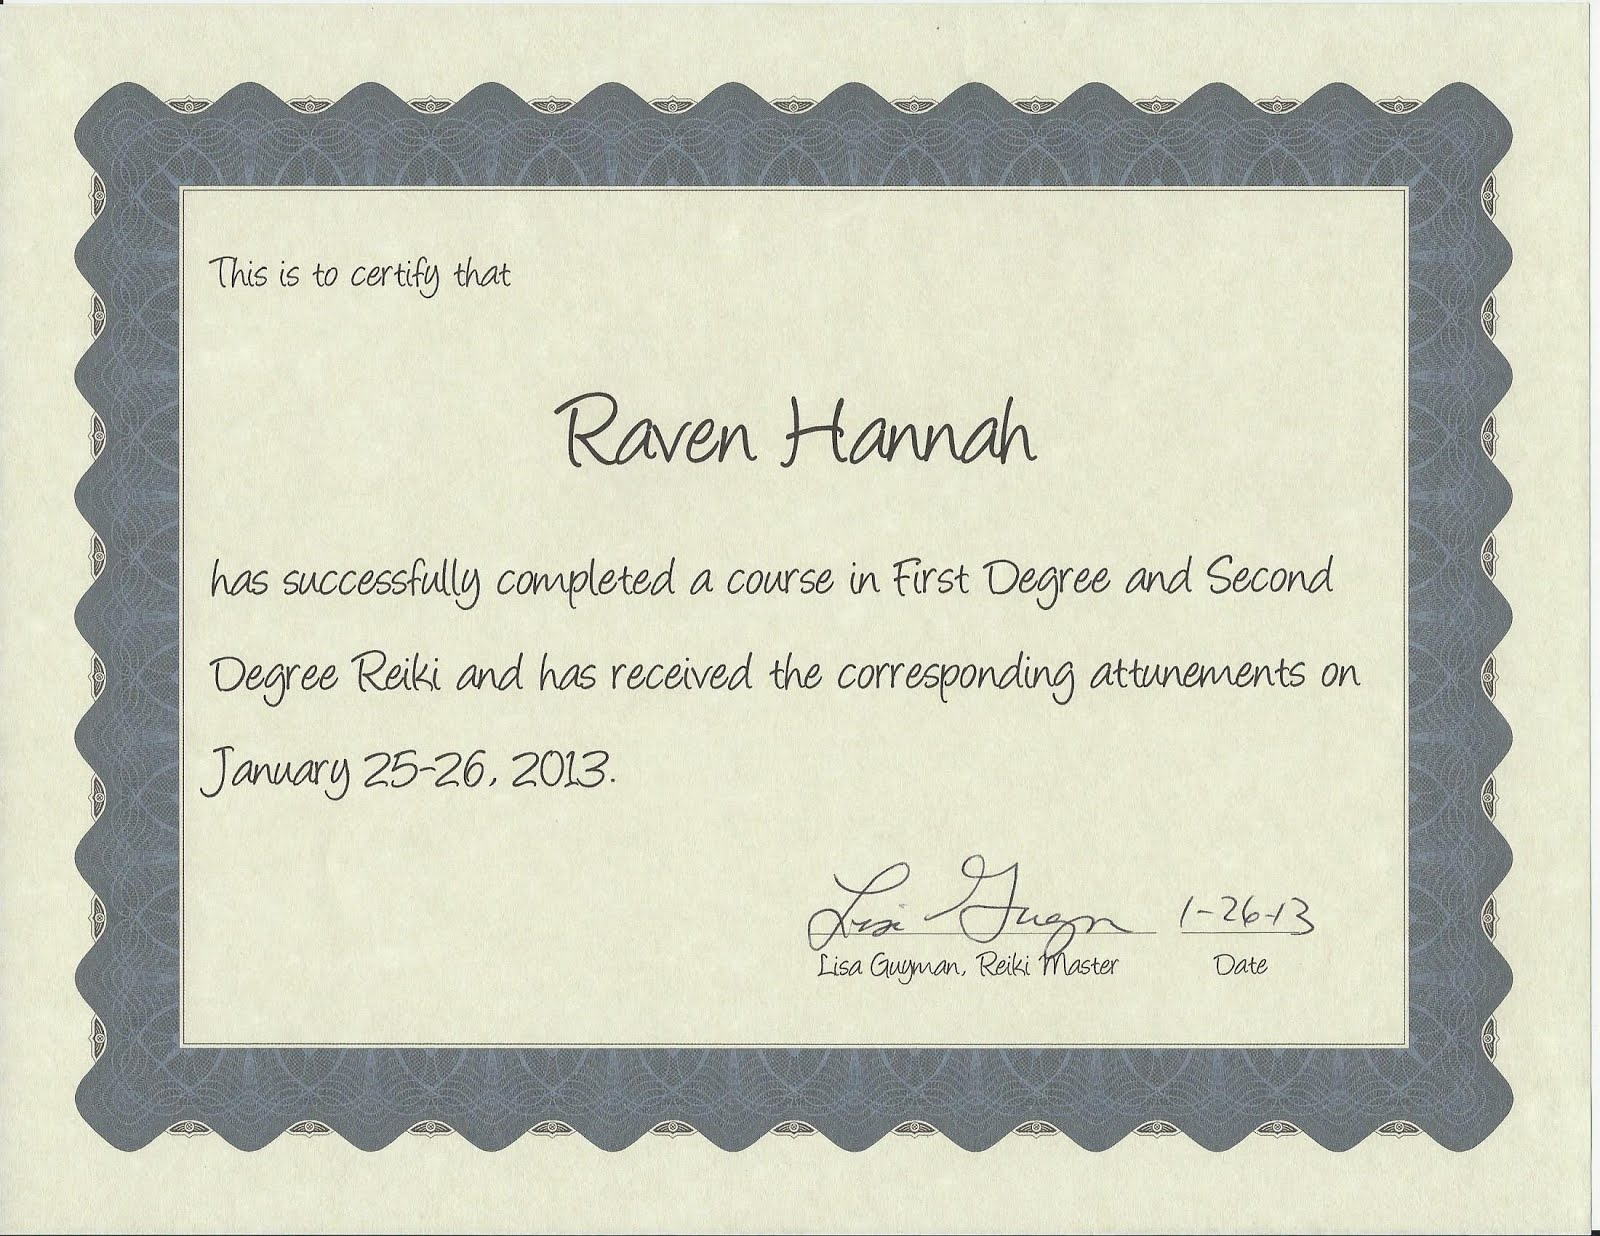 Certified Reiki Practitioner